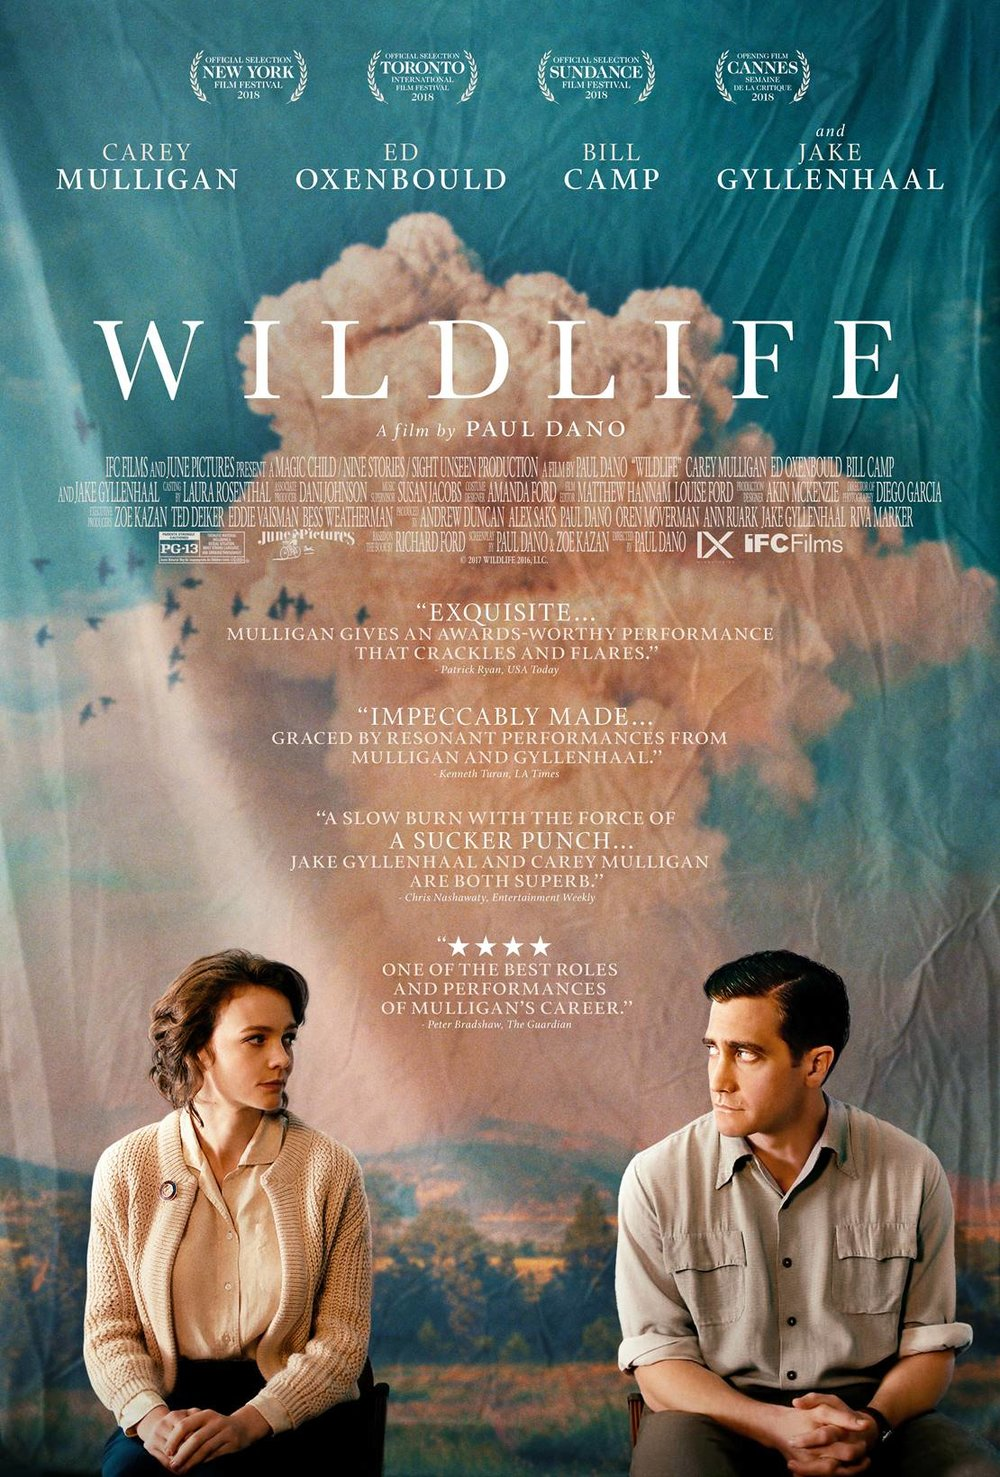 Wildlife - Directed by Paul DanoWritten by Paul Dano and Zoe Kazan based on a book by Richard FordWith Carey Mulligan, Jack Gyllenhaal, Ed Oxenbould…